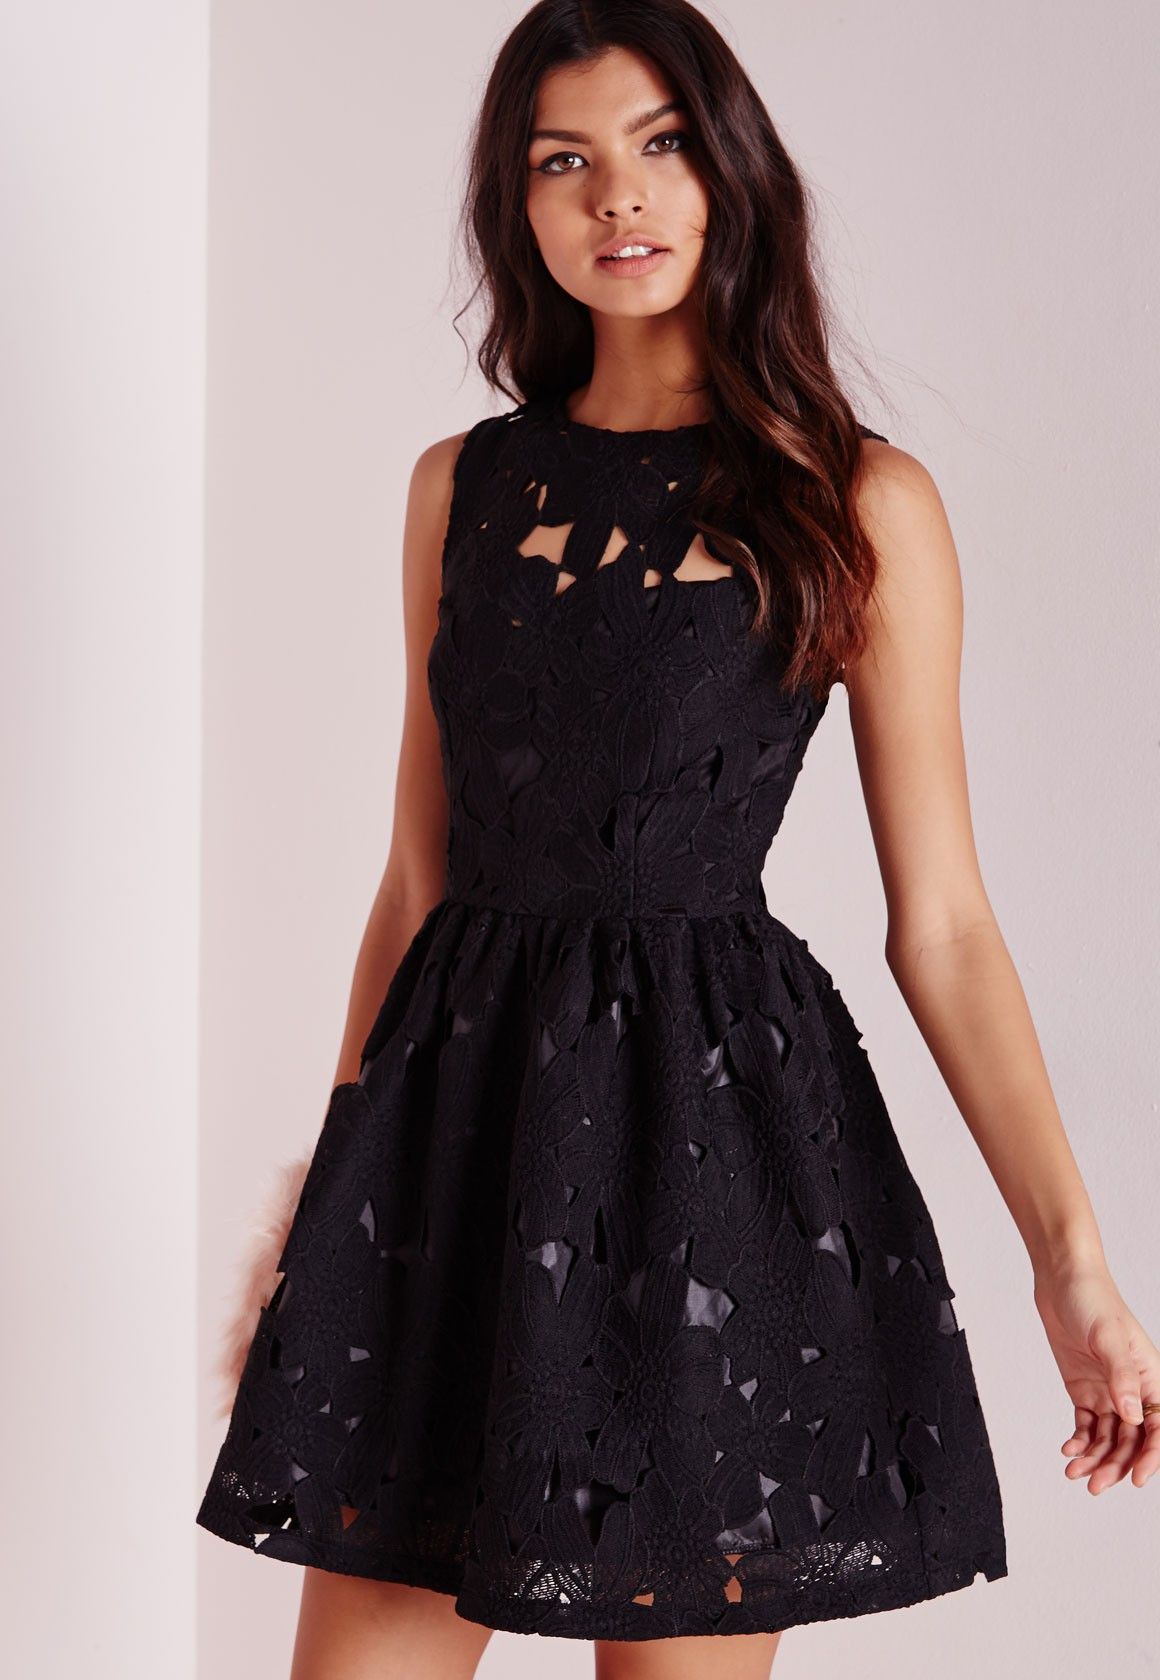 Black dress skater - Black Lace Dress Skater